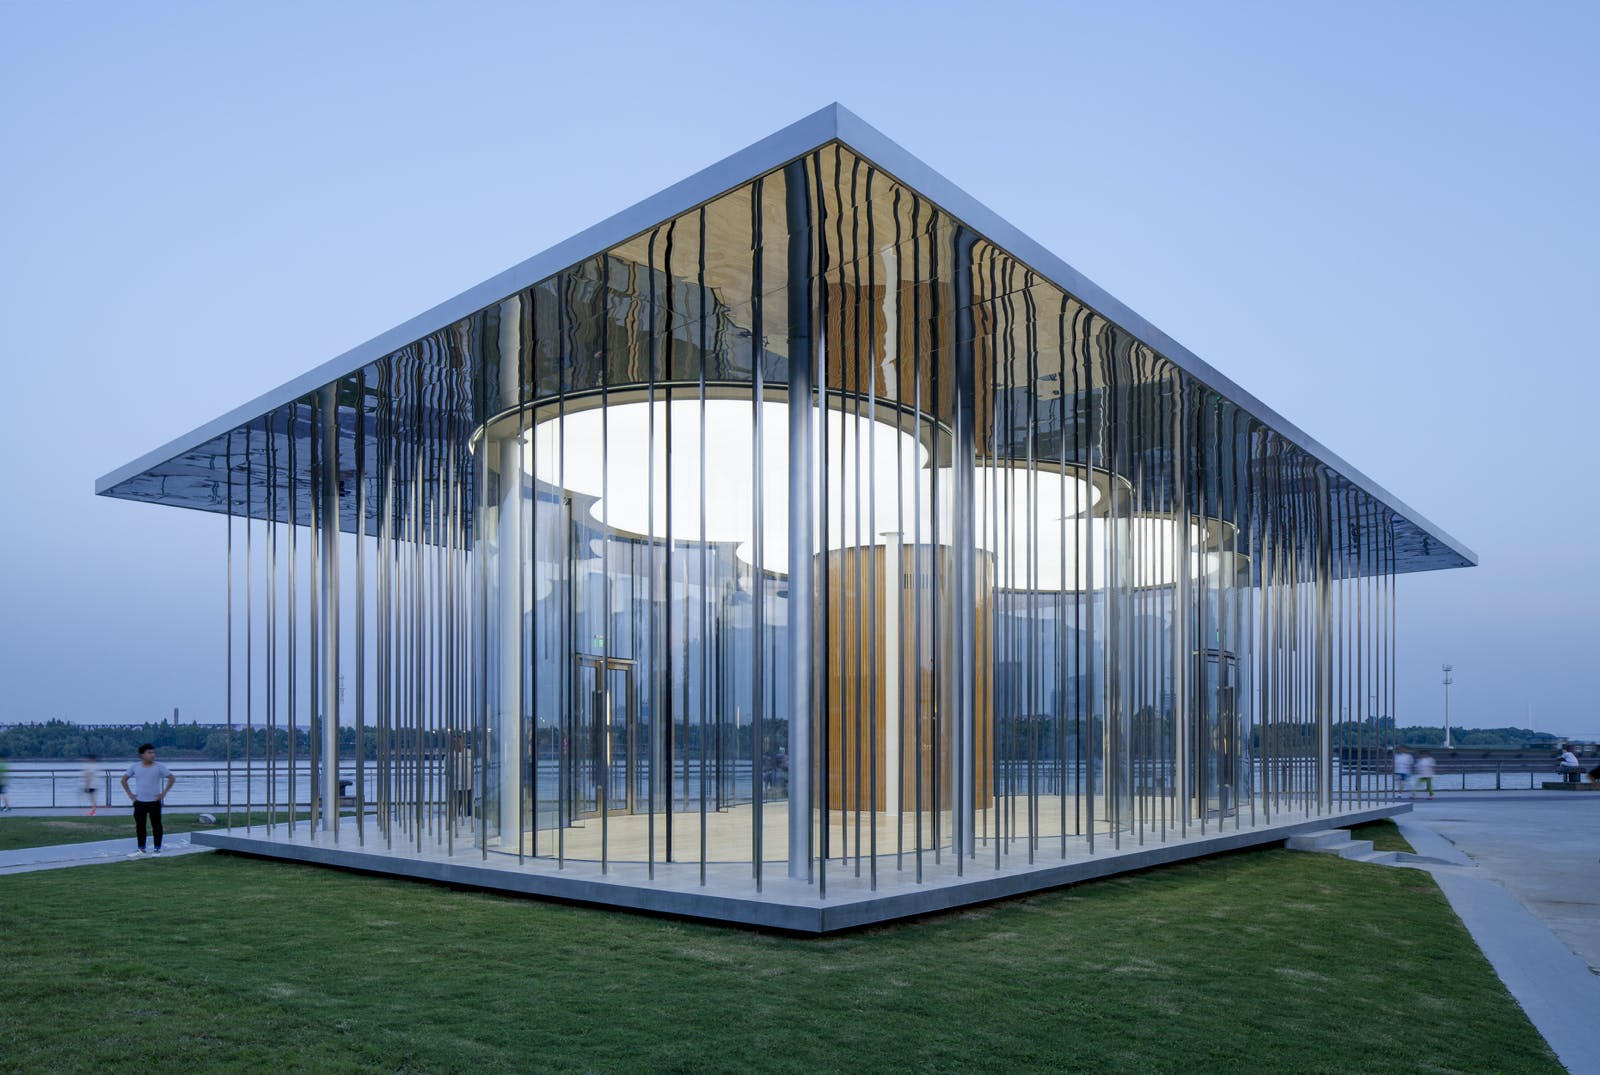 Shl S Shanghai Cloud Pavilion Is A Stunning Glass And Steel